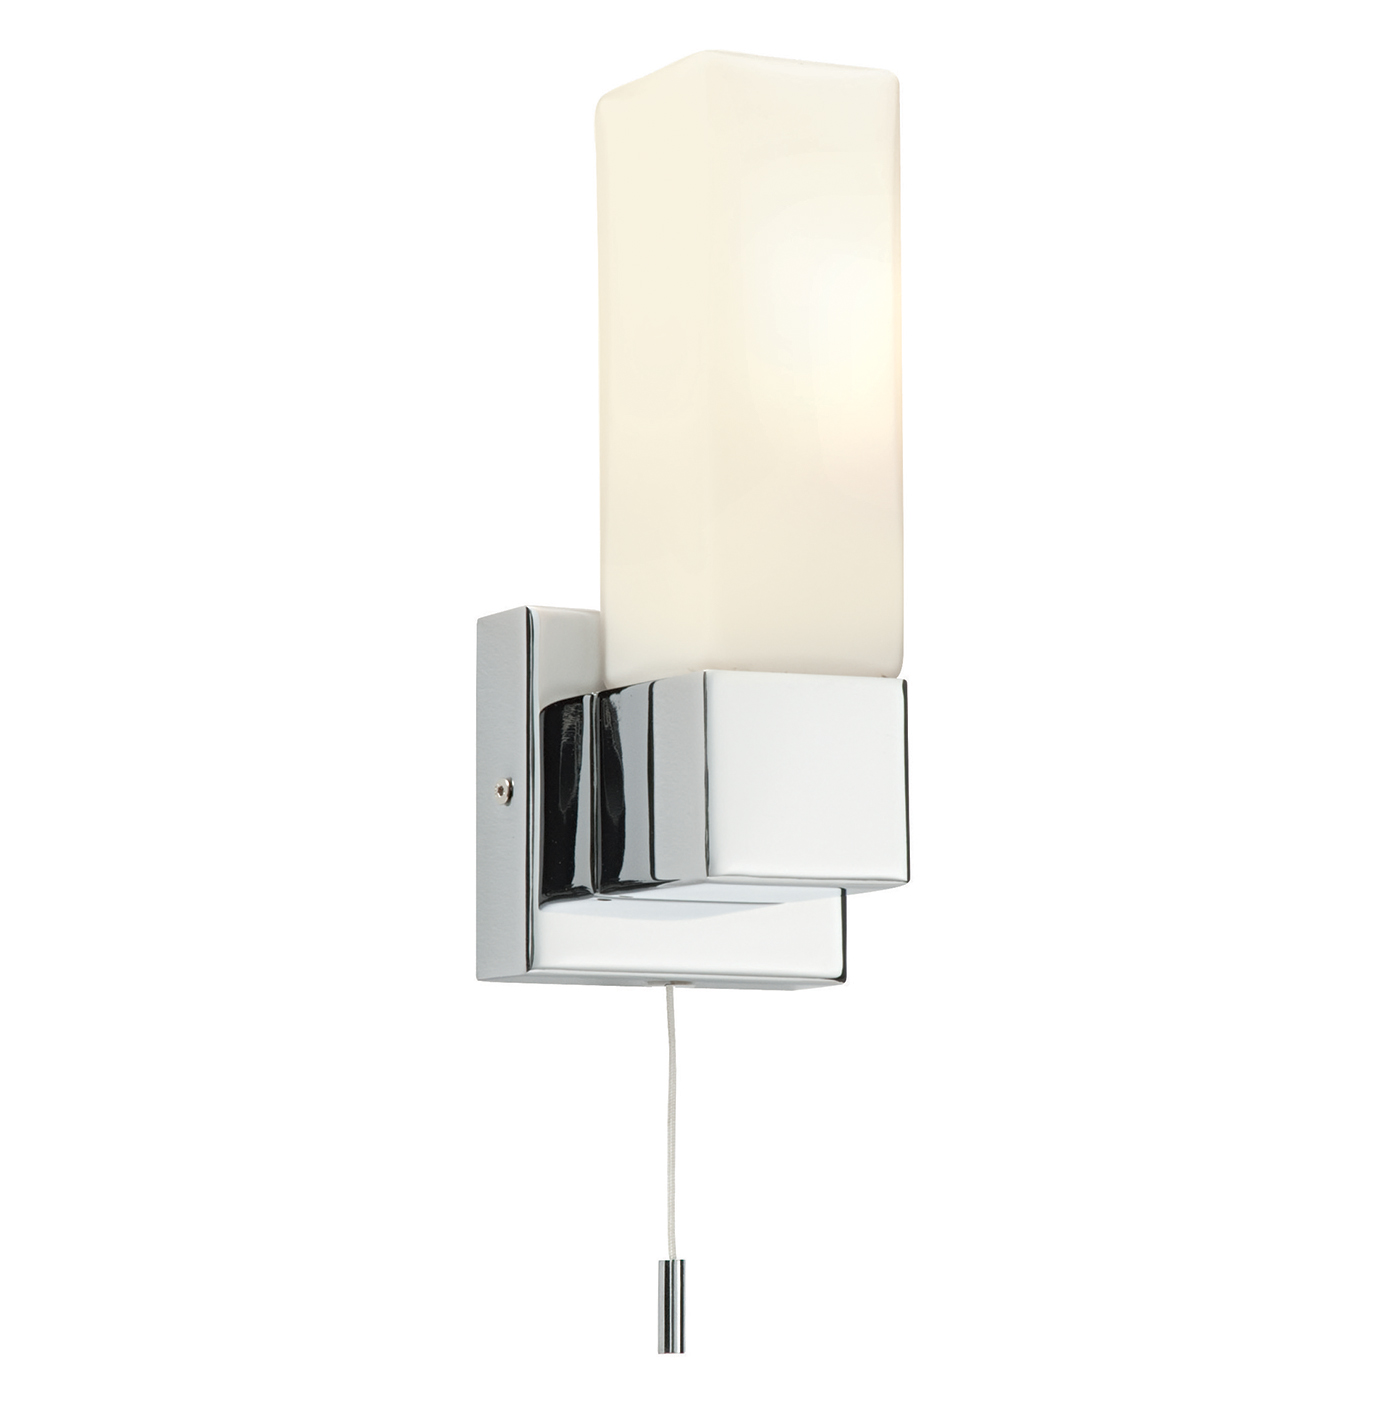 Living Room Wall Lights With Pull Cord : Endon Square 1lt bathroom wall light IP44 40W Chrome & opal glass pull cord Liminaires